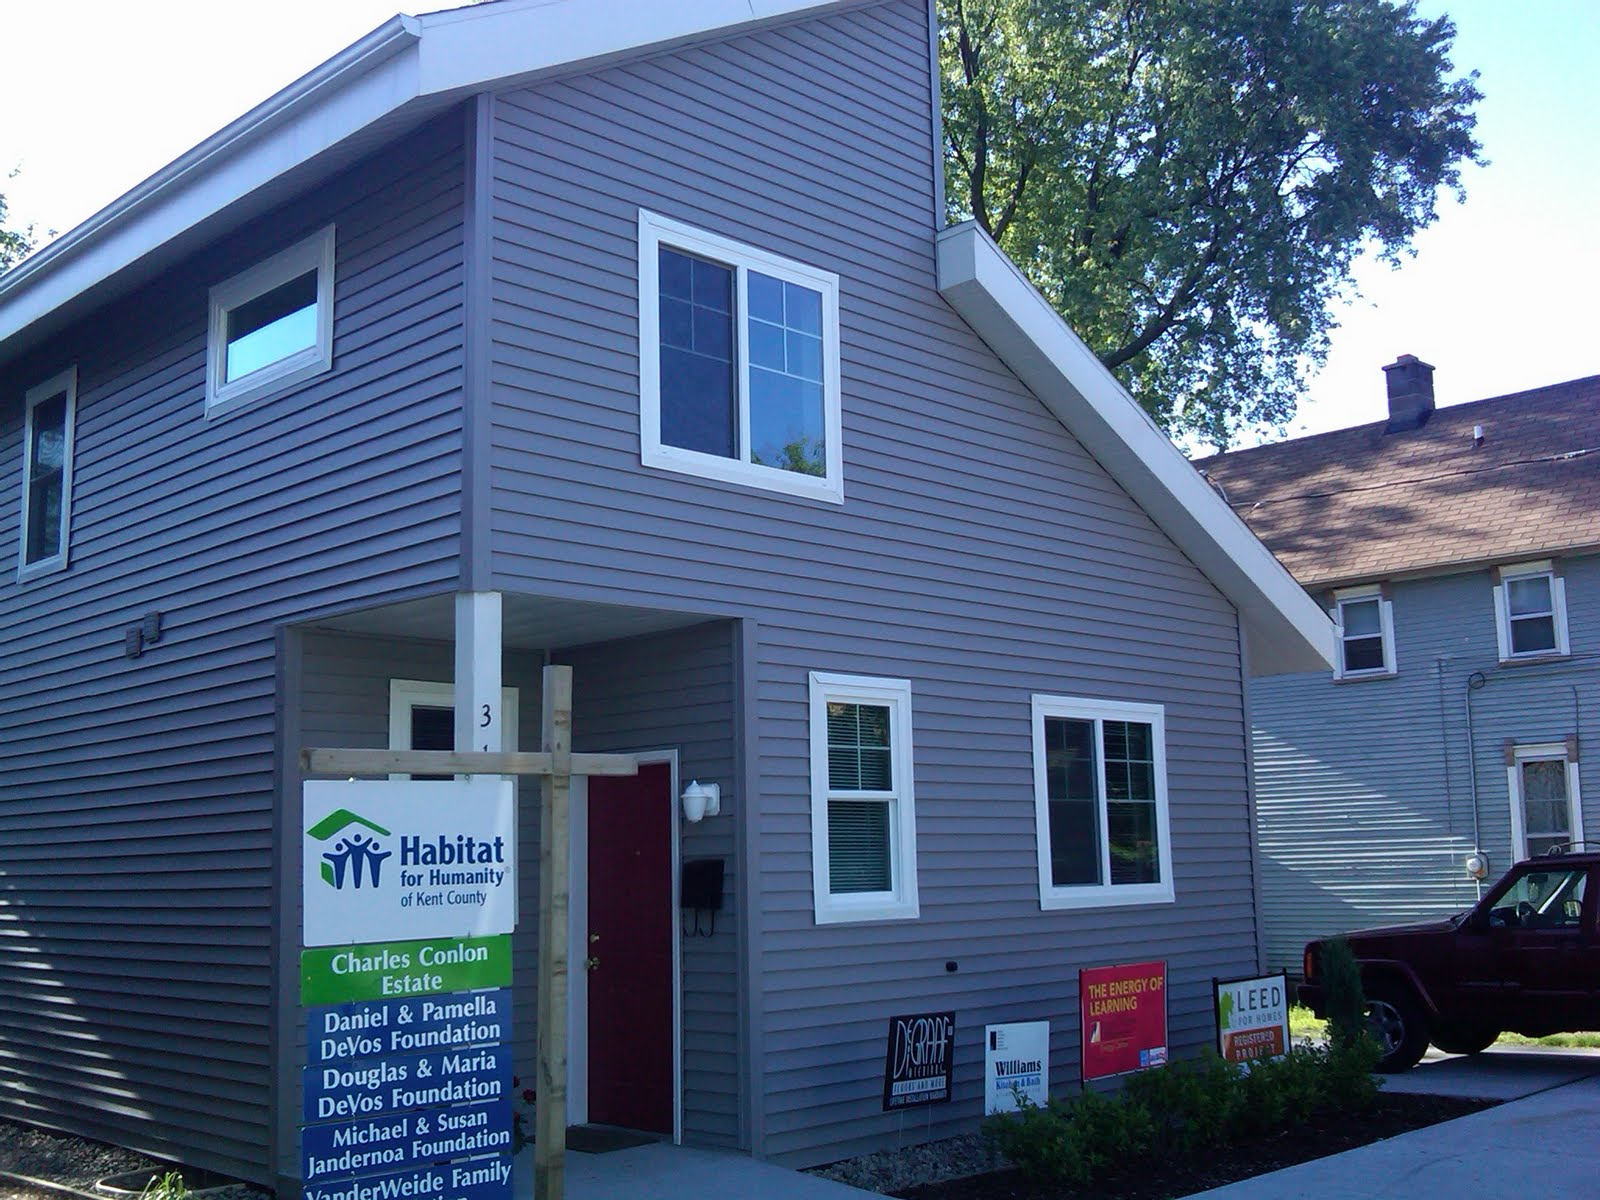 335 freyling place se project receives leed for homes for Leed for homes provider